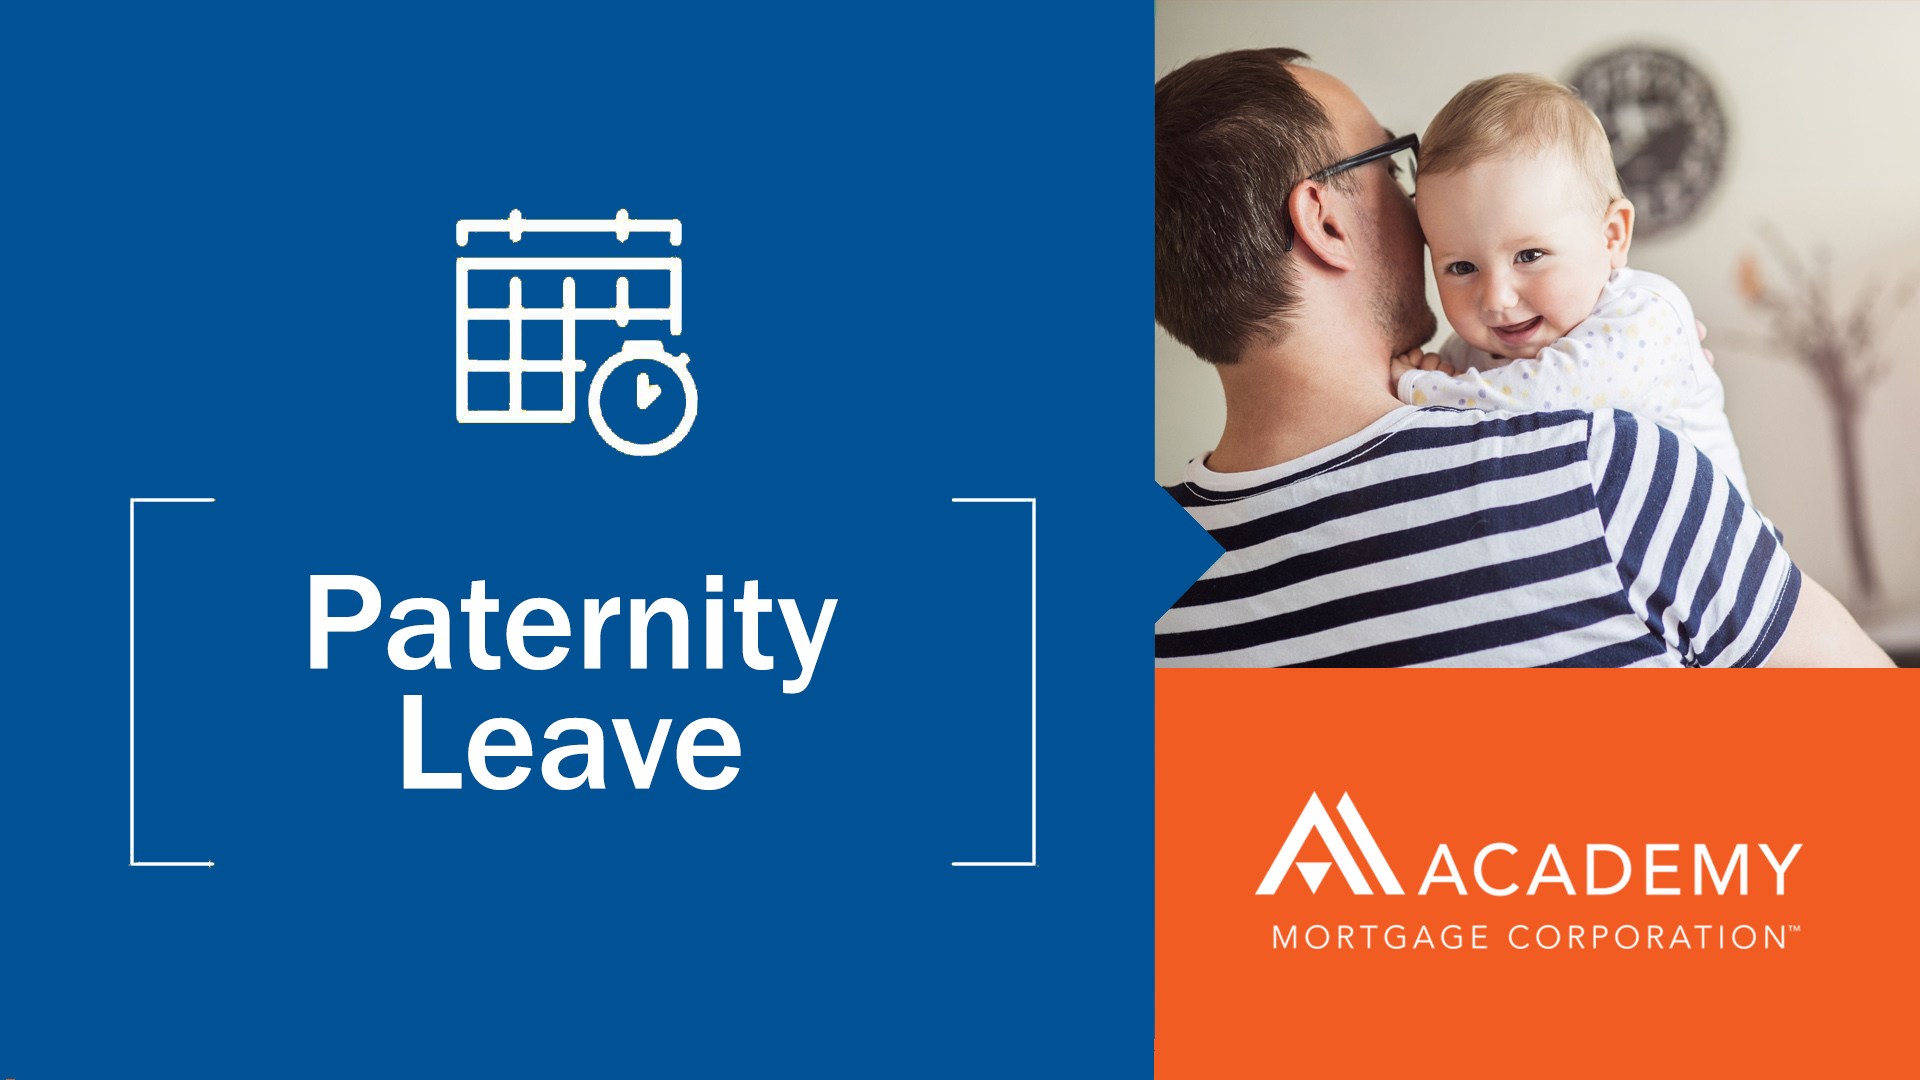 Benefits Graphic: Paternity Leave